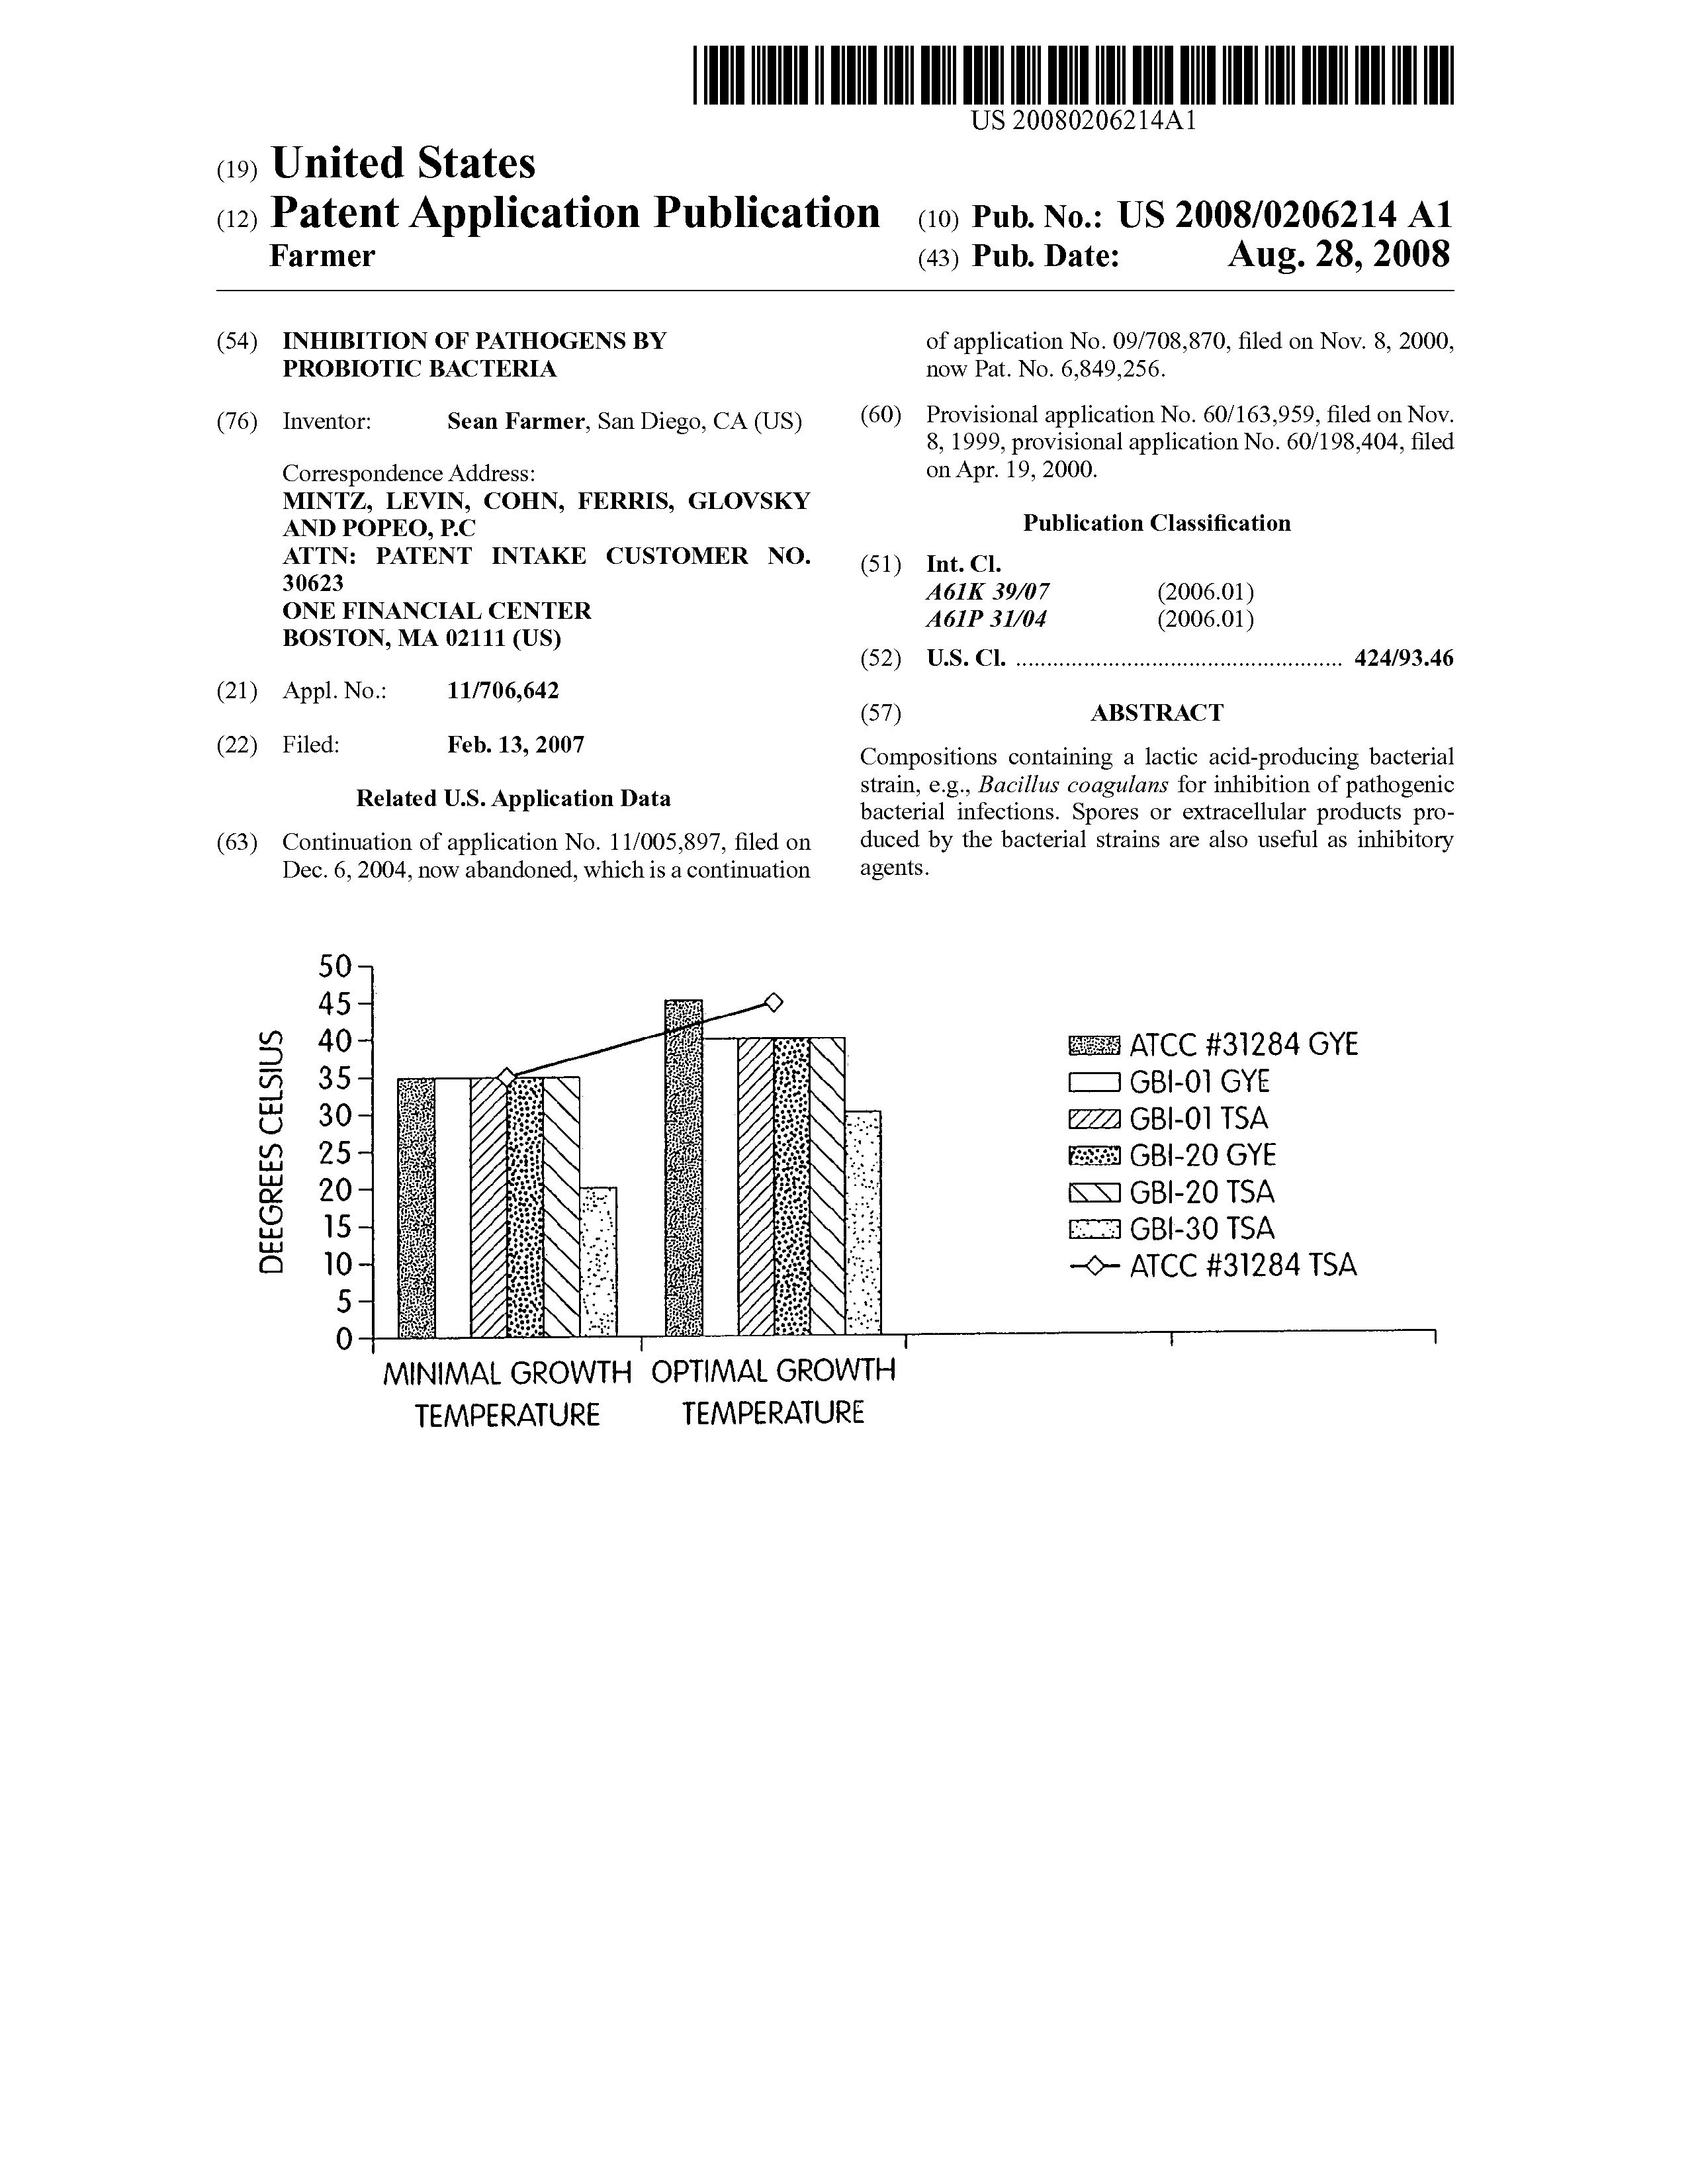 US 2008/0206214 A1 - Inhibition Of Pathogens By Probiotic